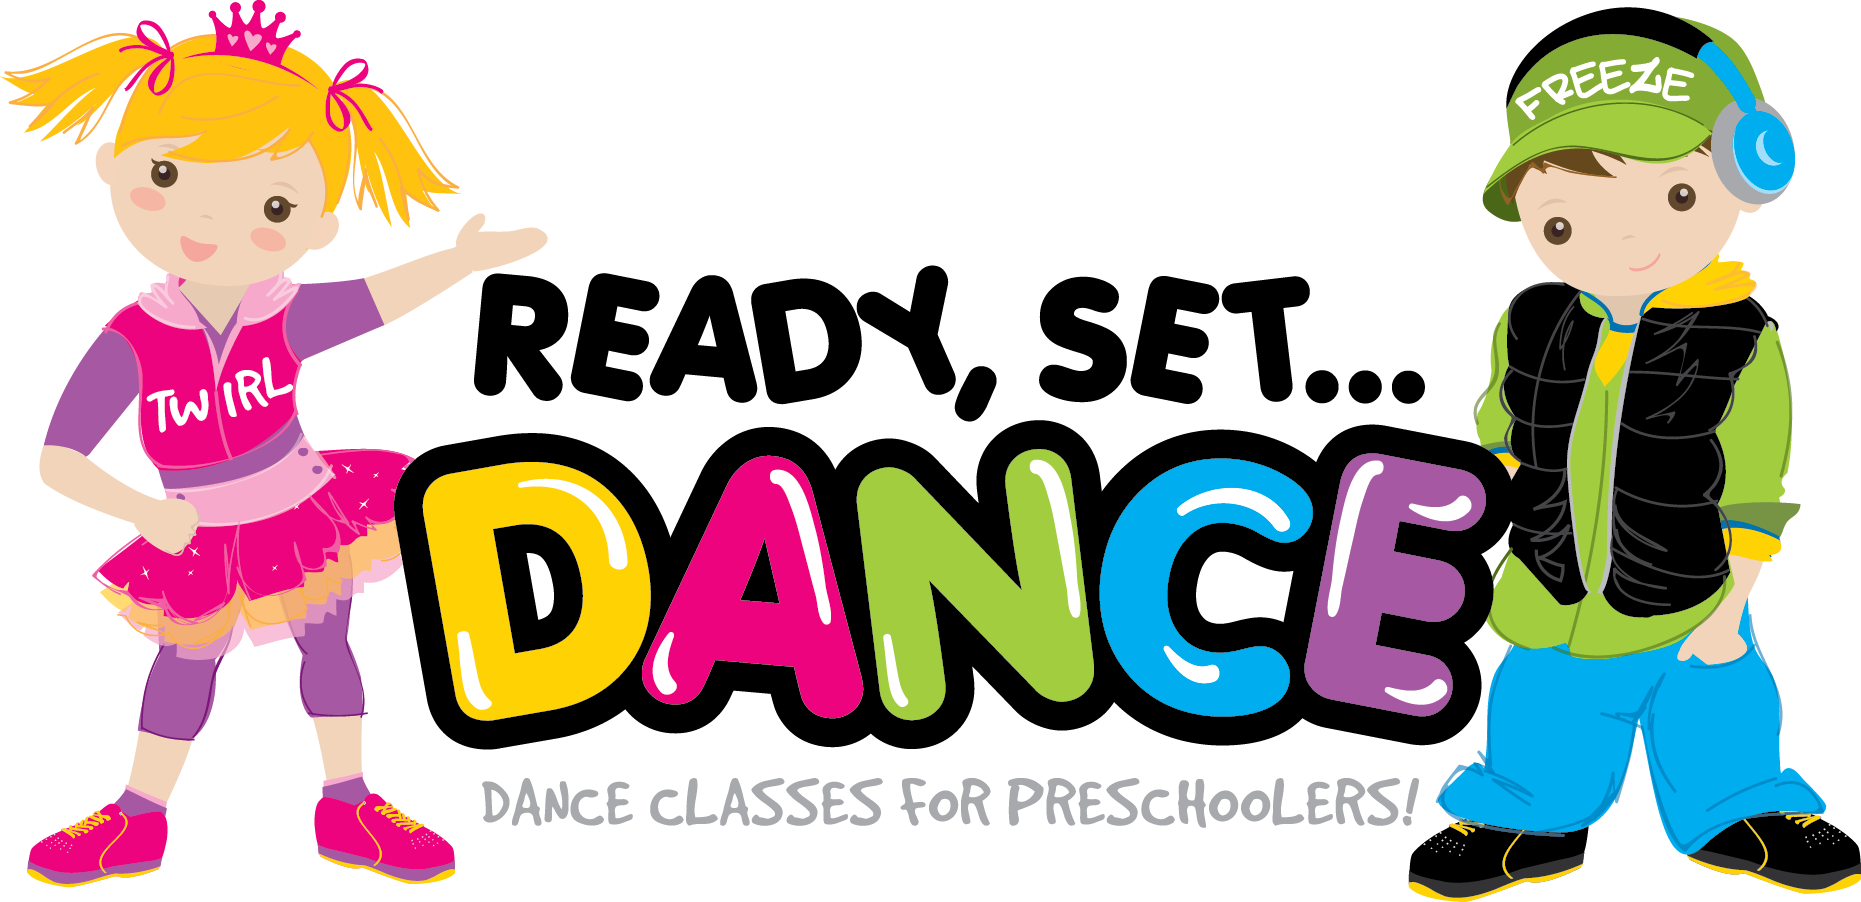 Legs performing arts ballet. Dancing clipart dance class image freeuse download